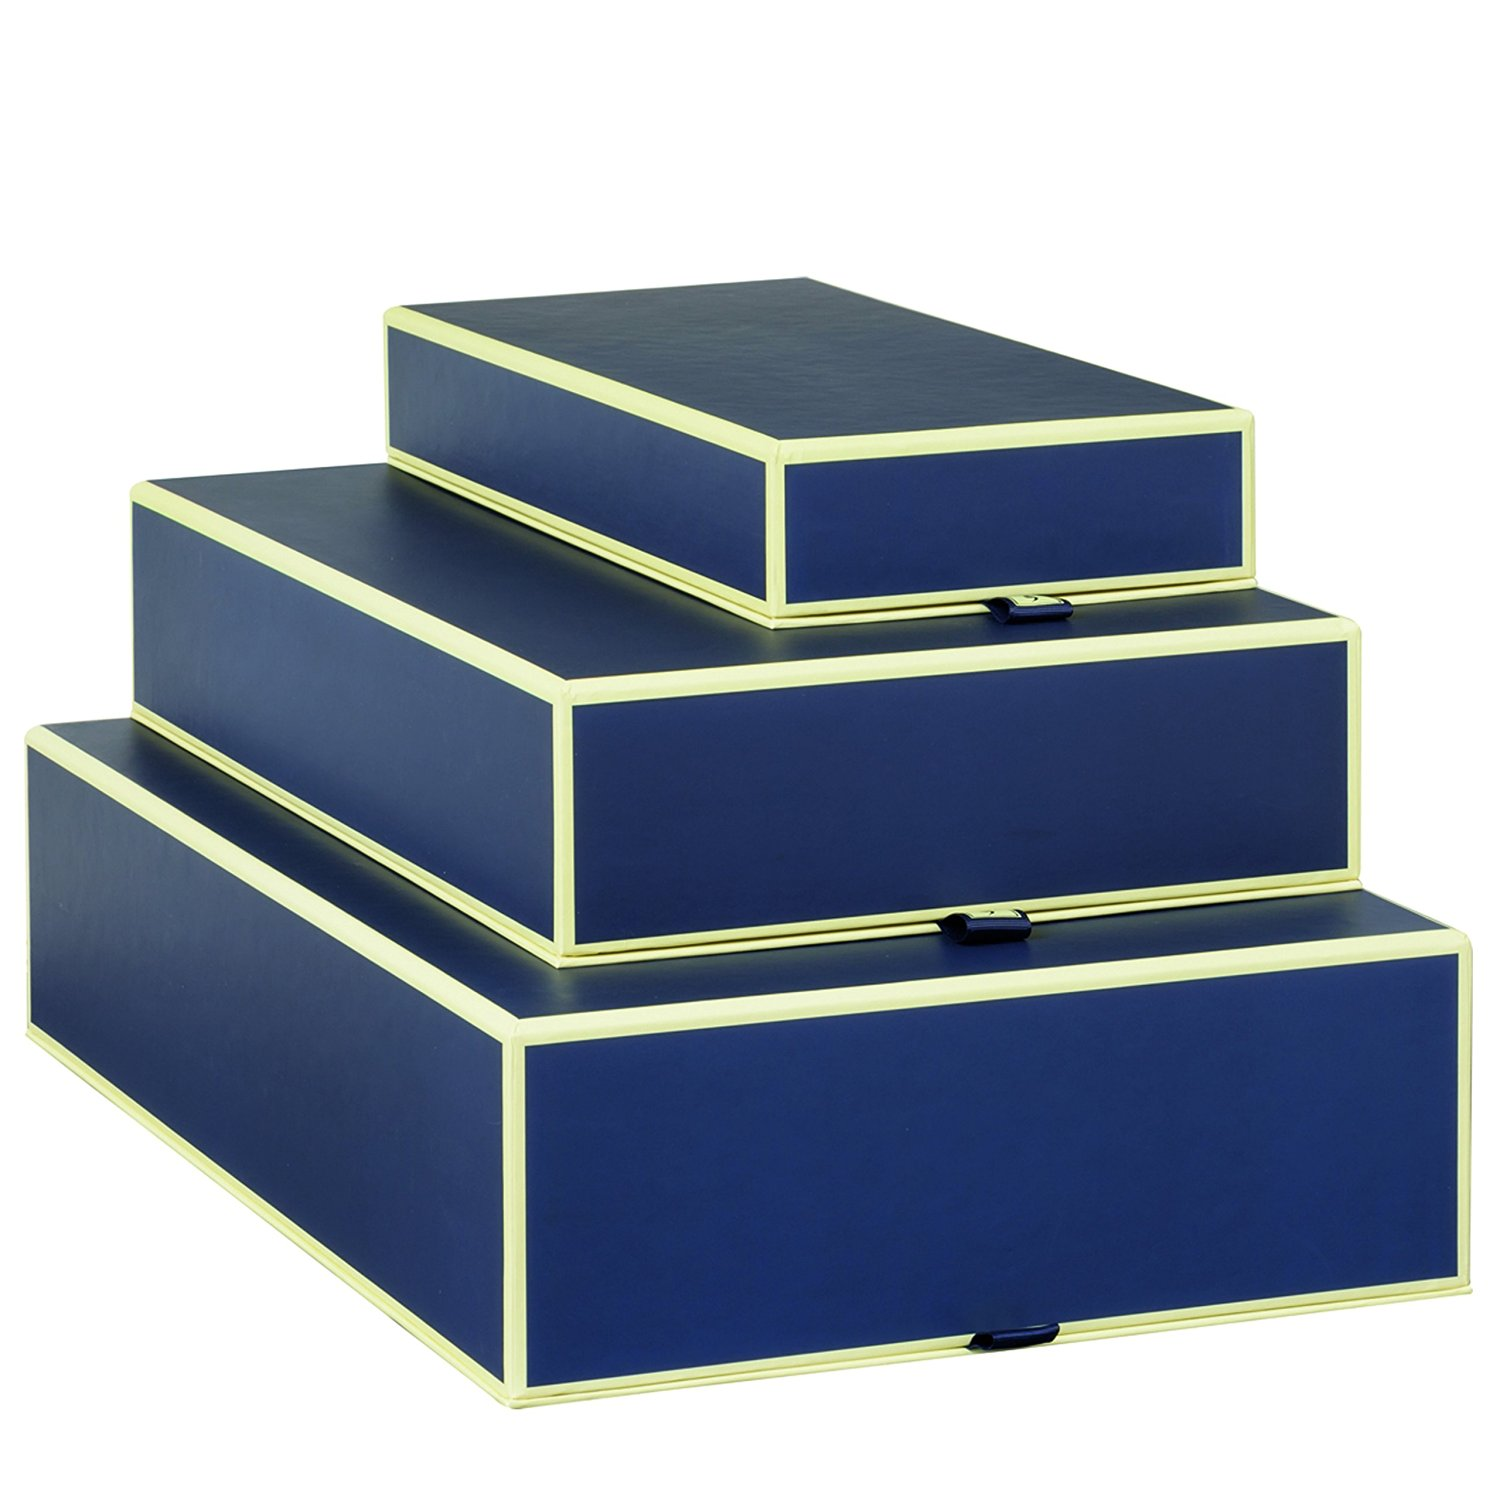 Set of 3 rectangular boxes marine +++ STORAGE- or GIFT BOXES +++ Quality made by Semikolon